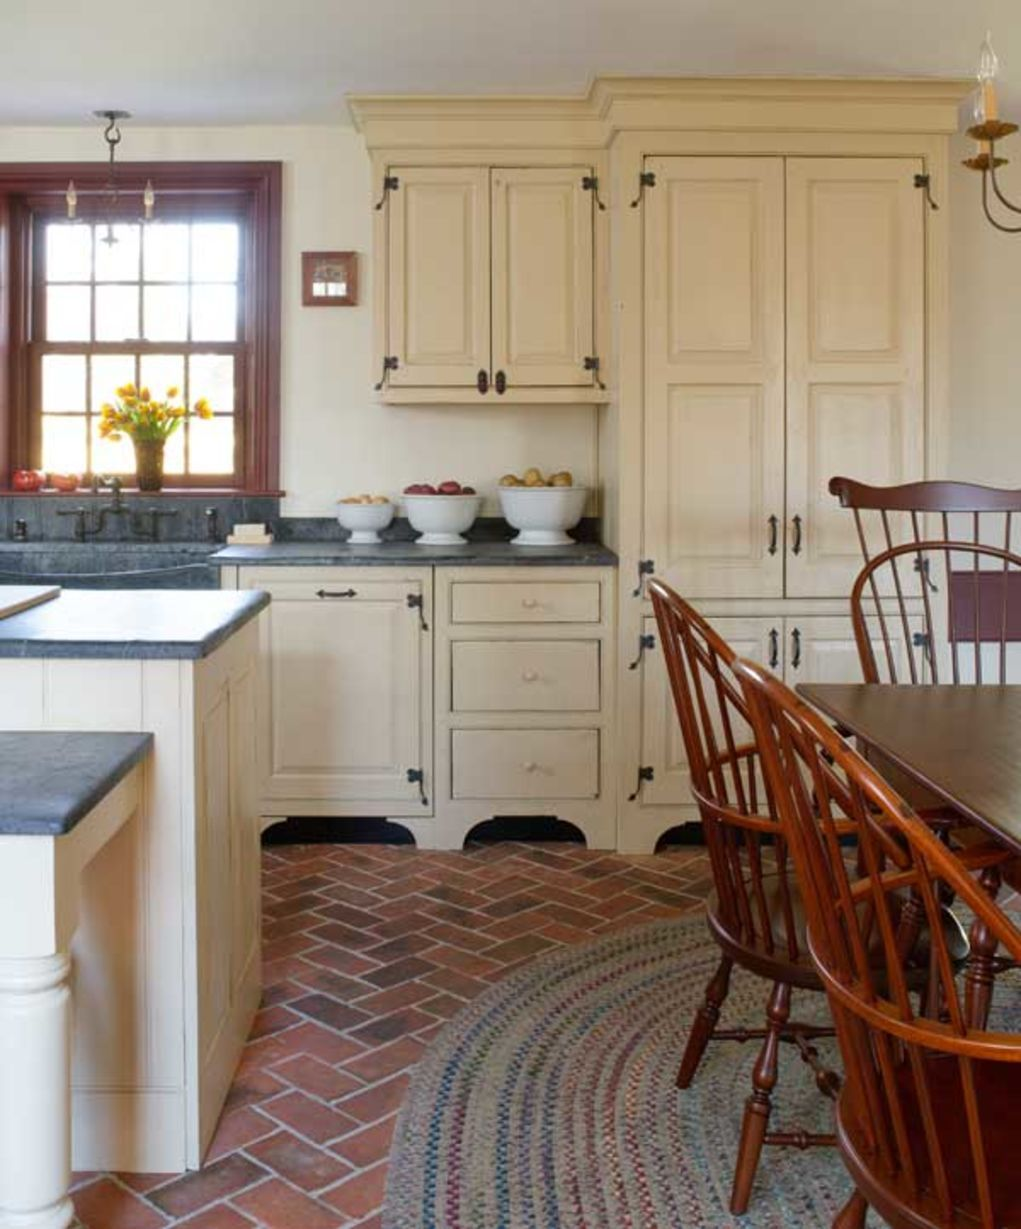 Kitchen Designing Online Awesome Designing A New Country Kitchen  Old House Restoration Products Inspiration